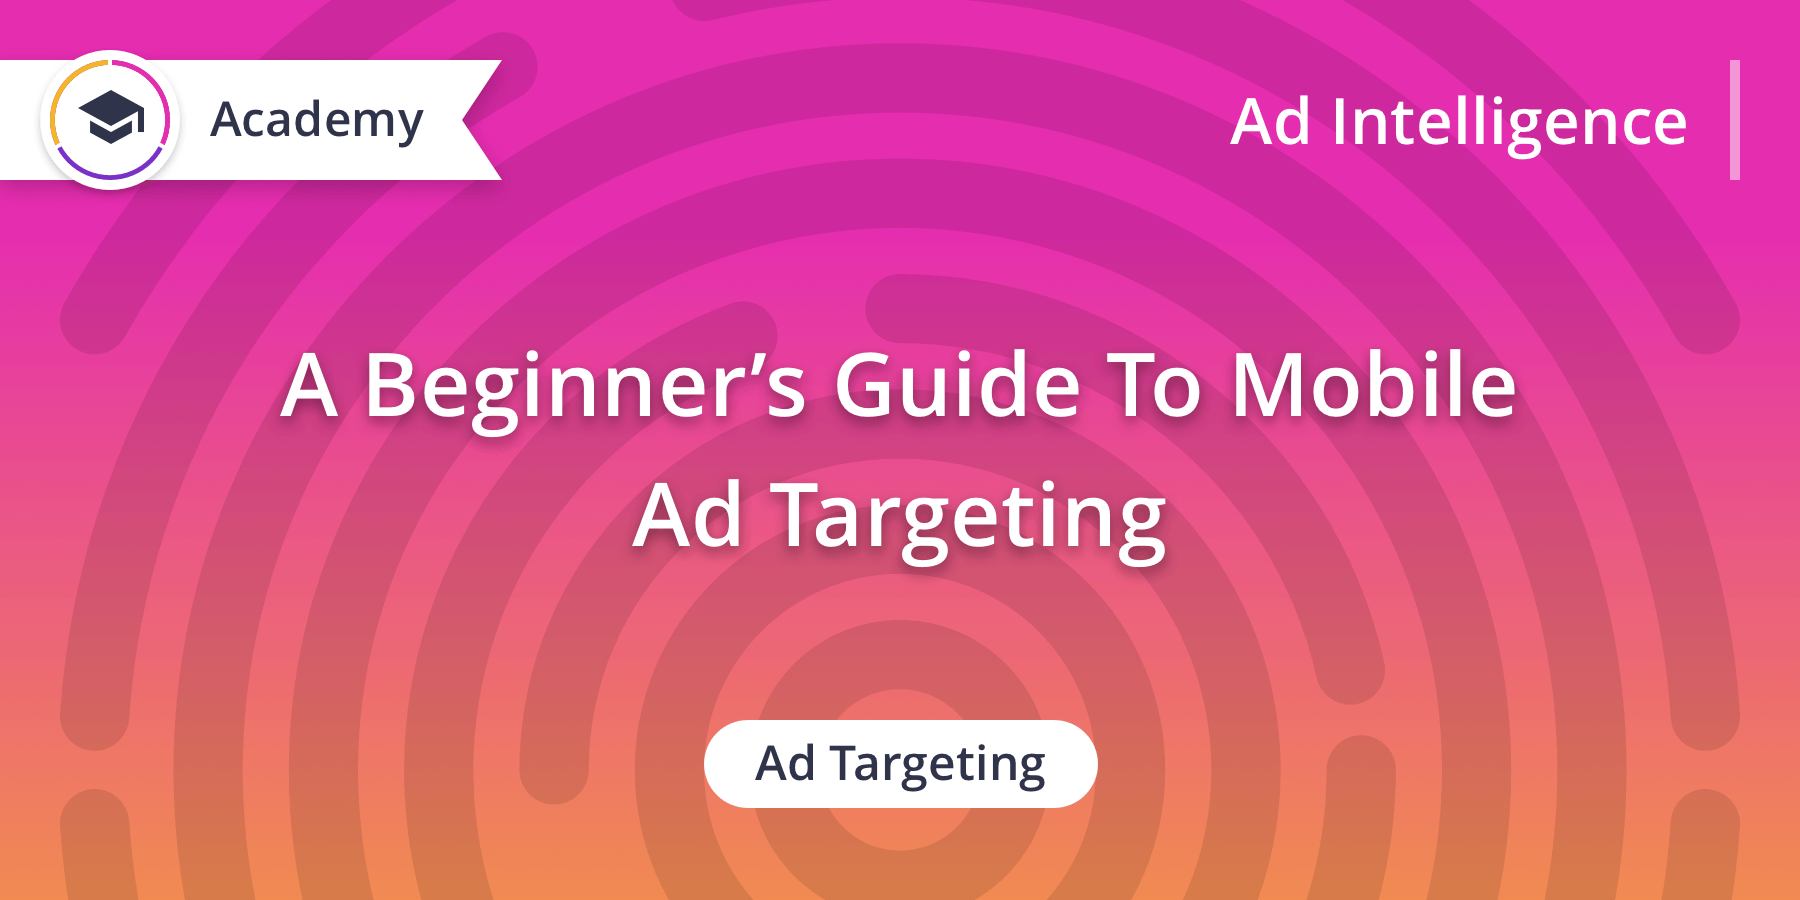 A Beginner's Guide To Mobile Ad Targeting